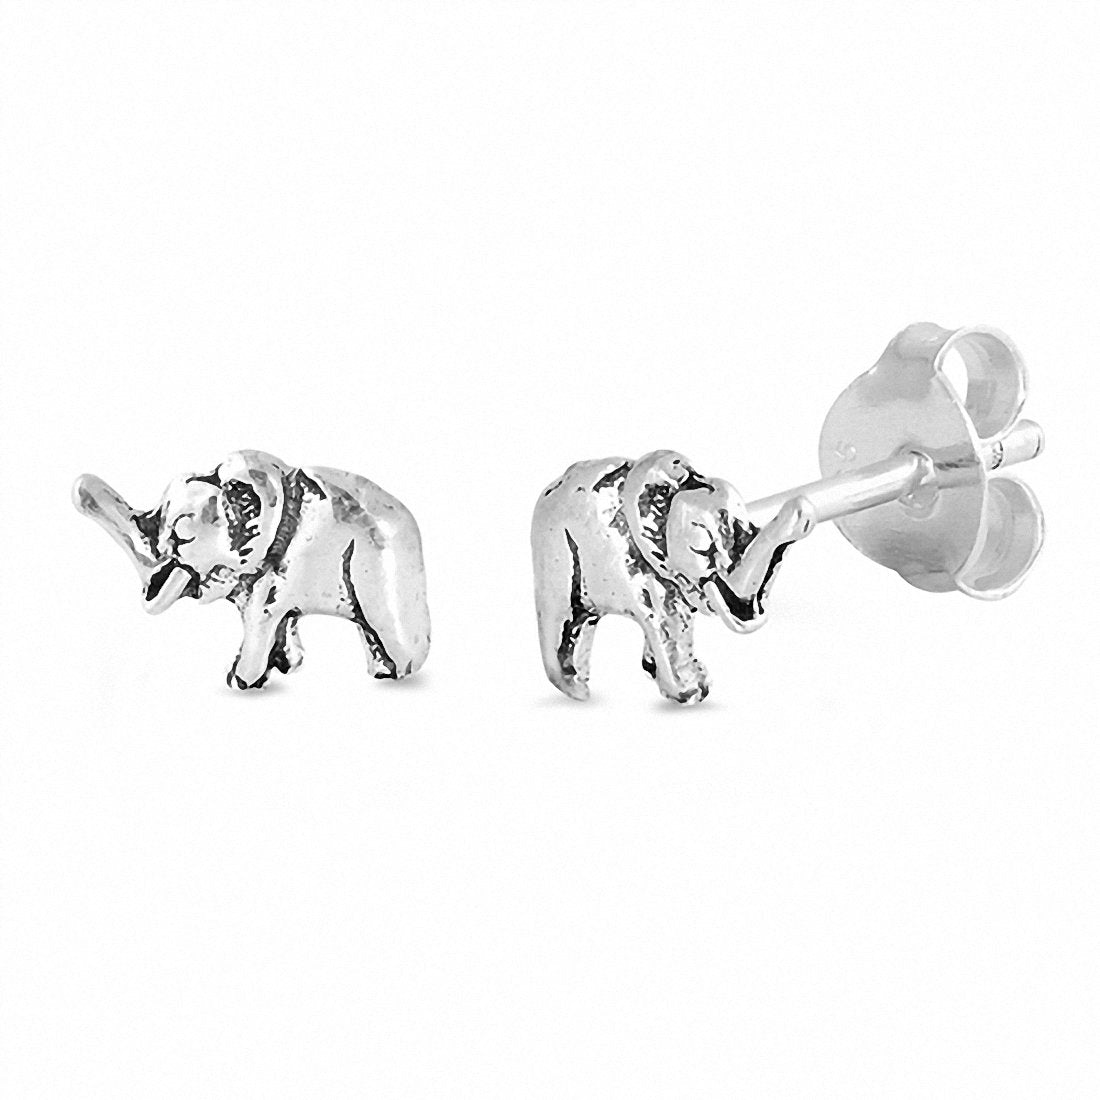 Tiny Elephant Stud Earrings 925 Sterling Silver